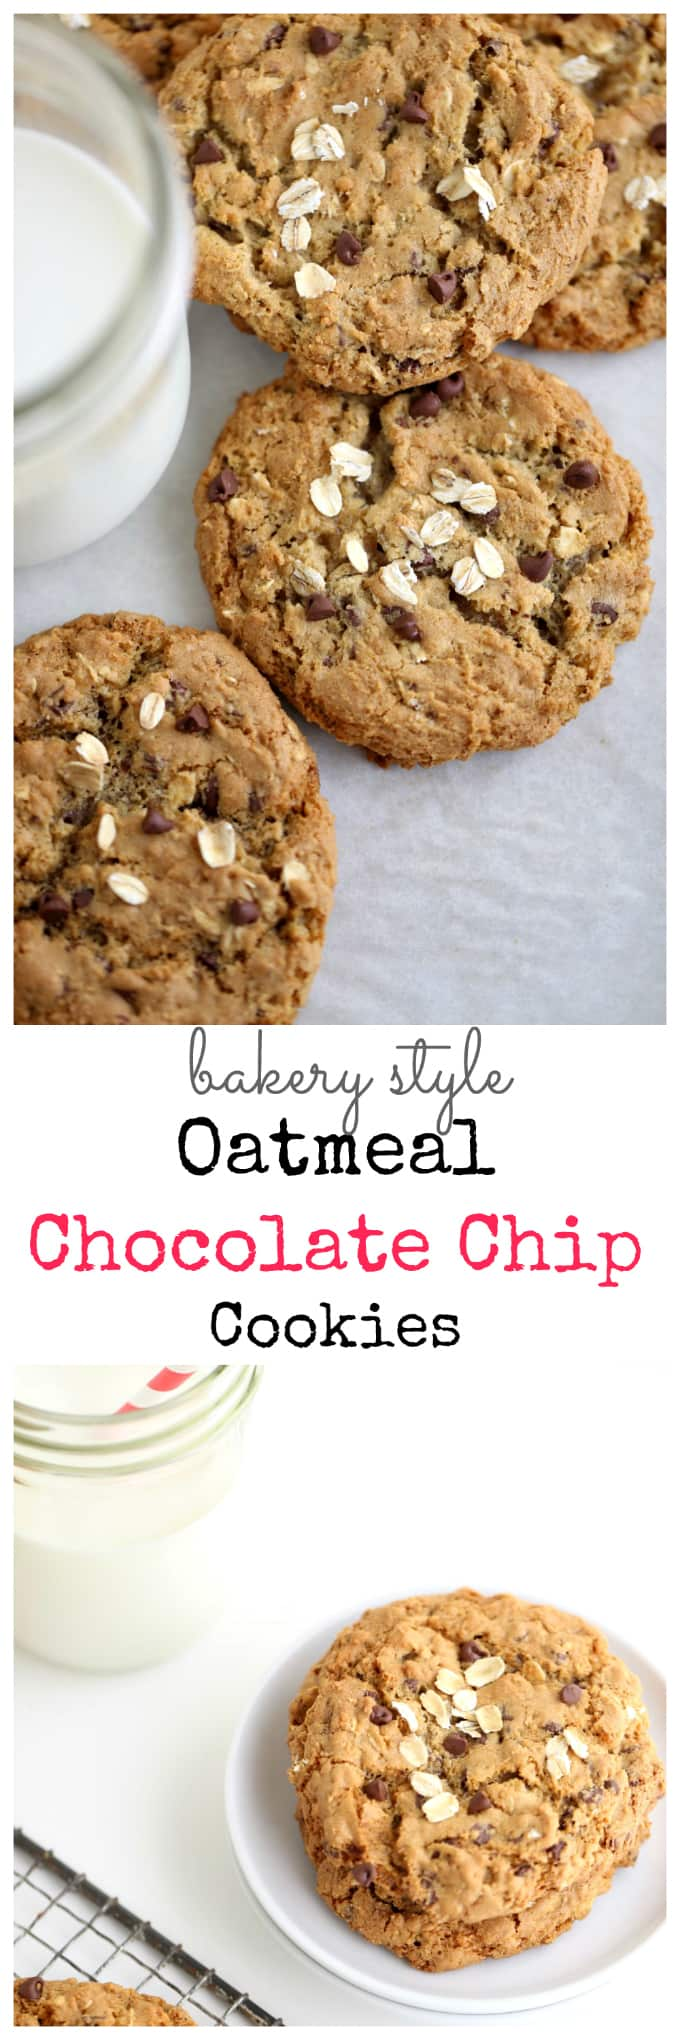 bakery style oatmeal chocolate chip cookies @createdbydiane